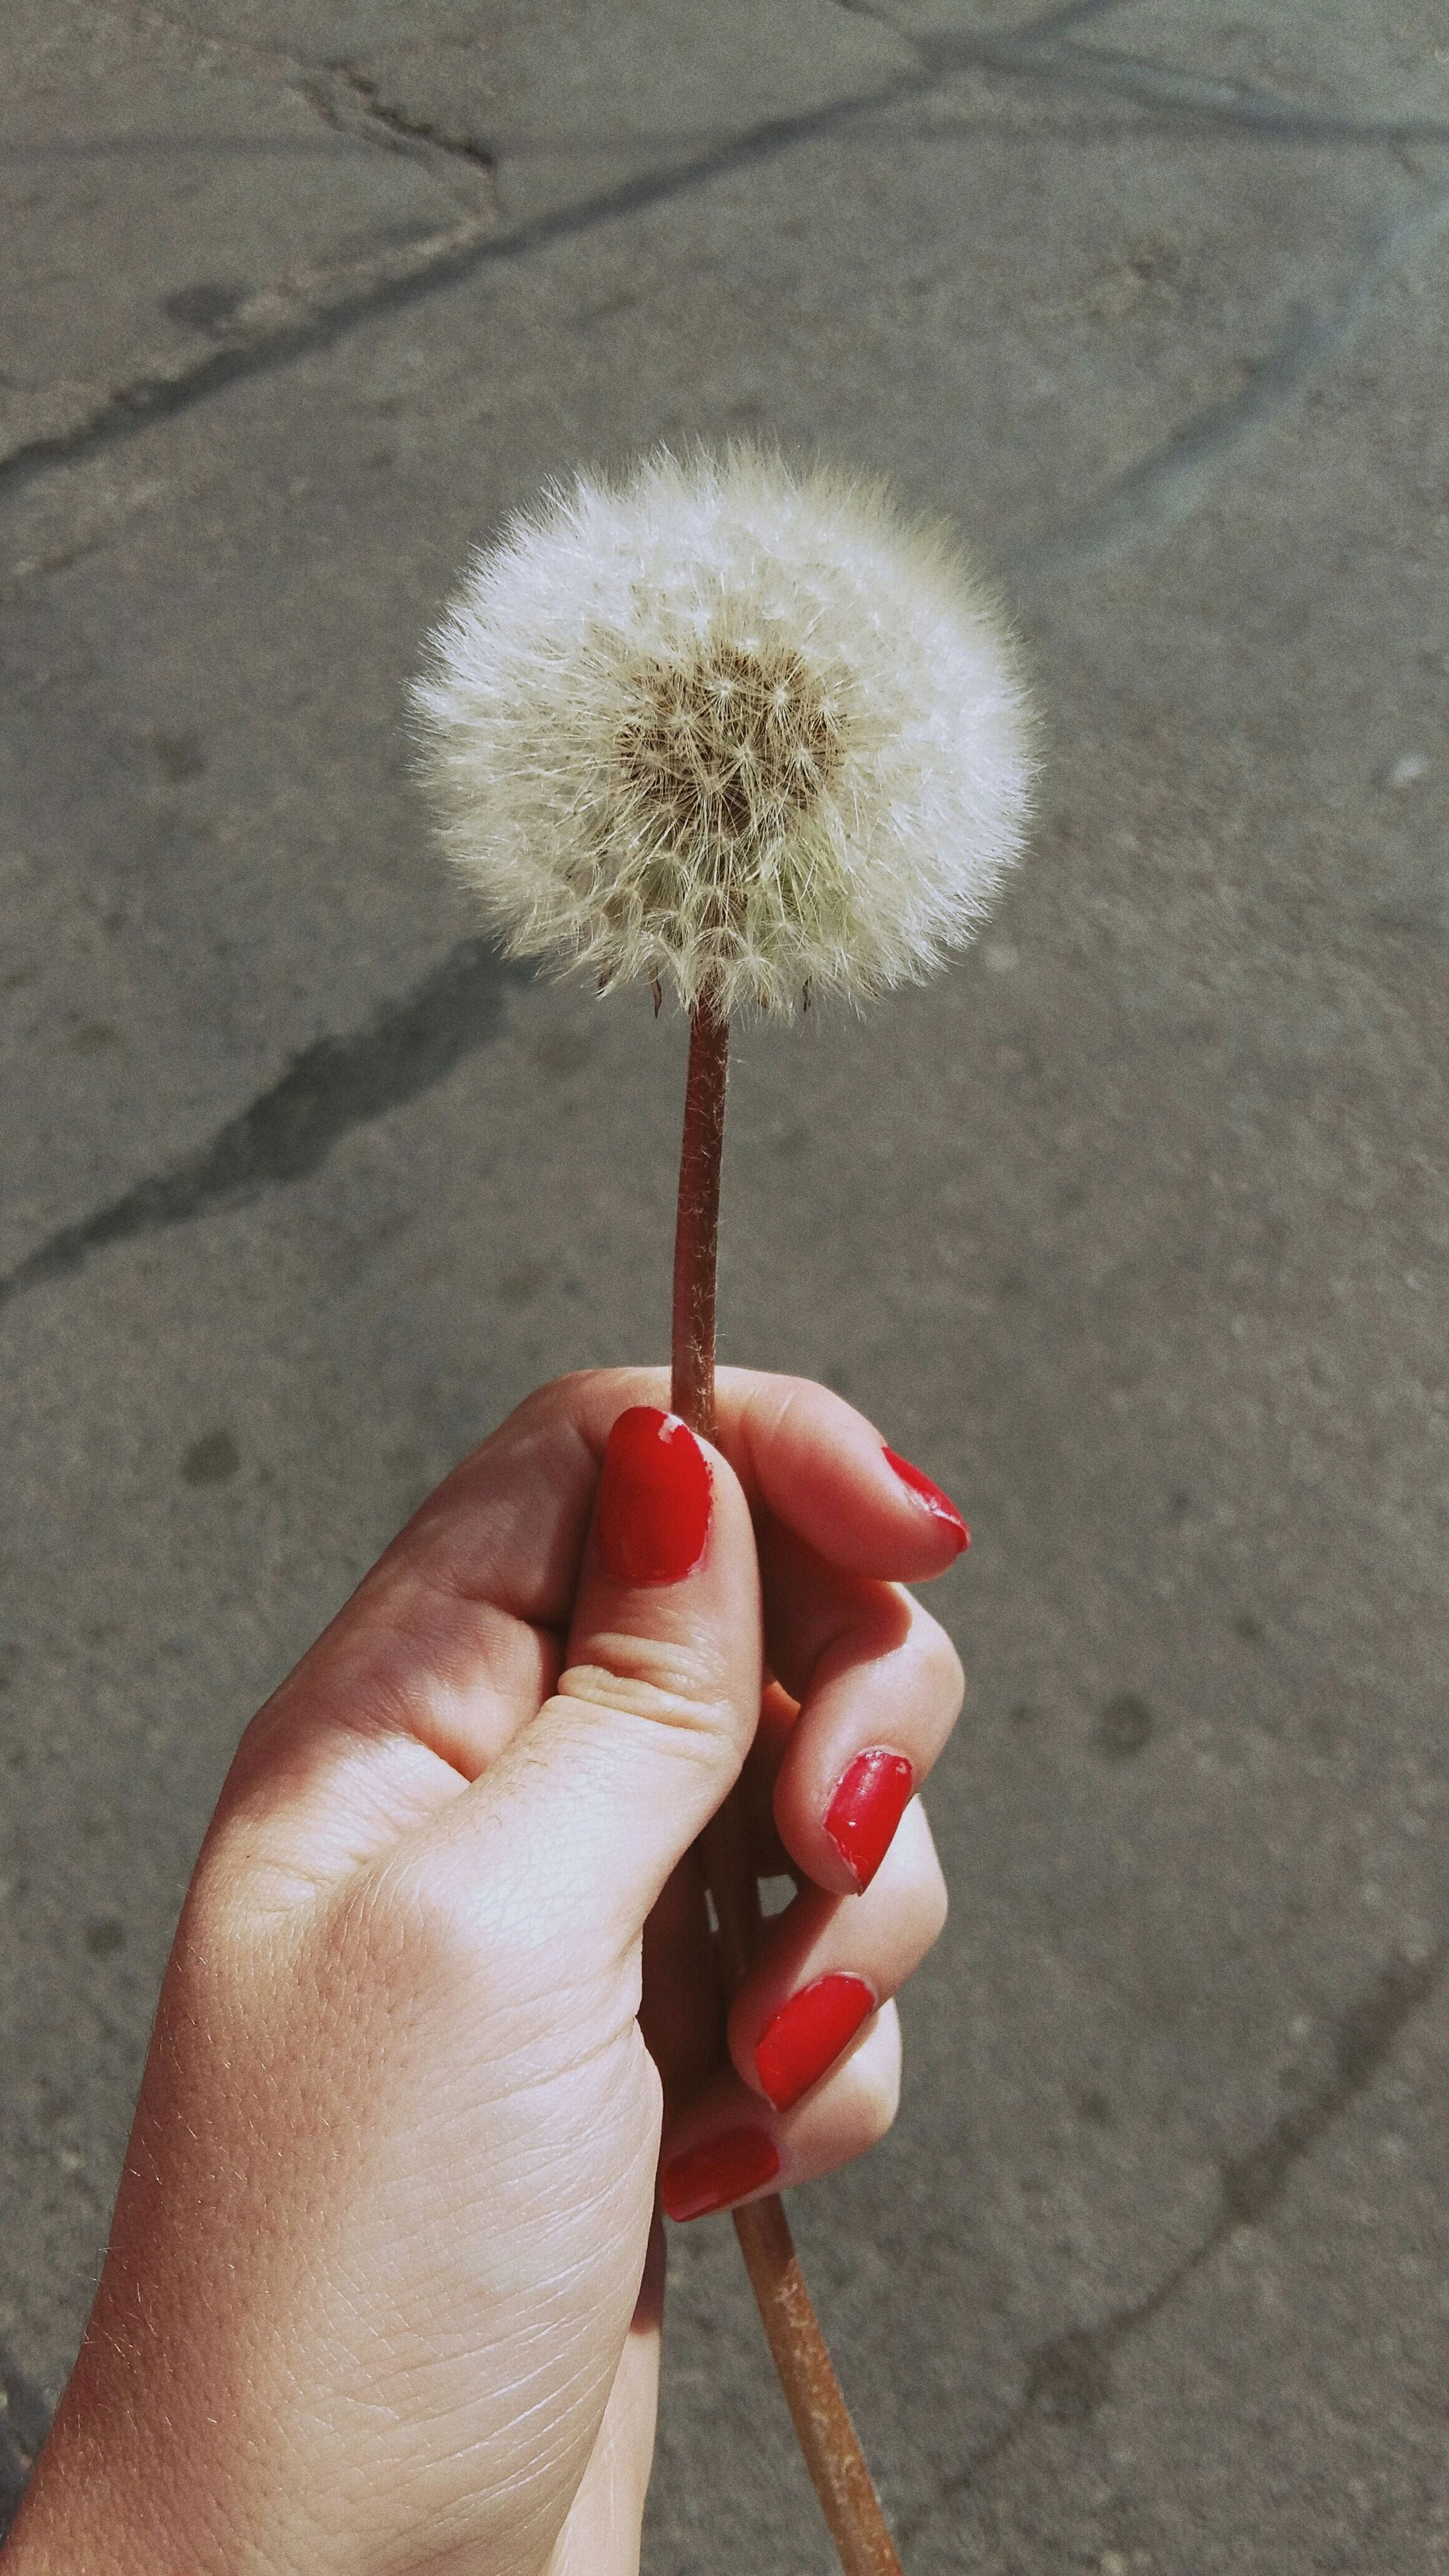 person, holding, flower, part of, cropped, freshness, close-up, single flower, human finger, red, flower head, unrecognizable person, stem, dandelion, fragility, personal perspective, day